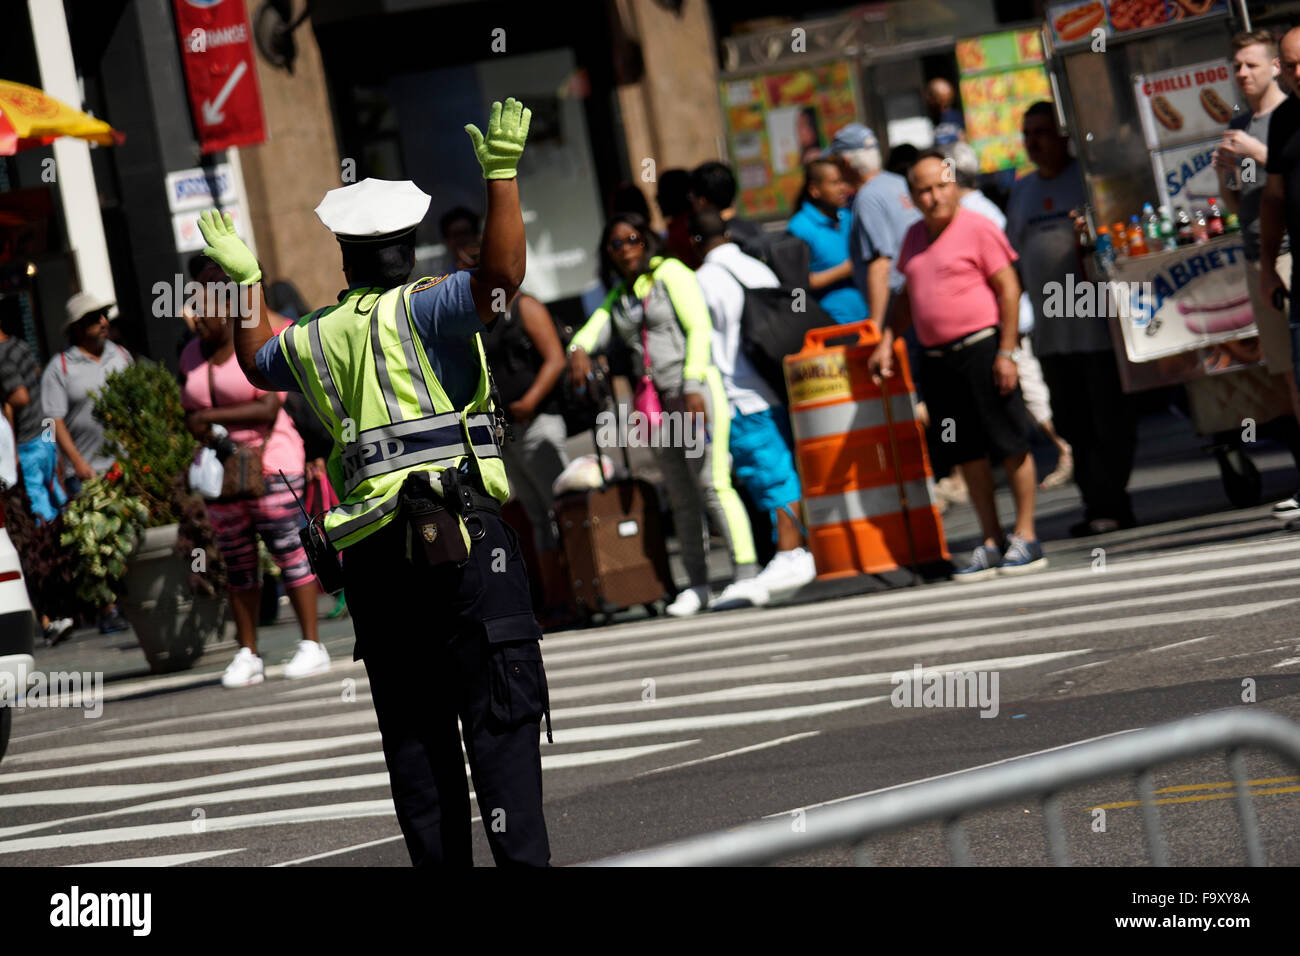 Police woman directing traffic near Herald Square in midtown Manhattan, New York City, USA - Stock Image